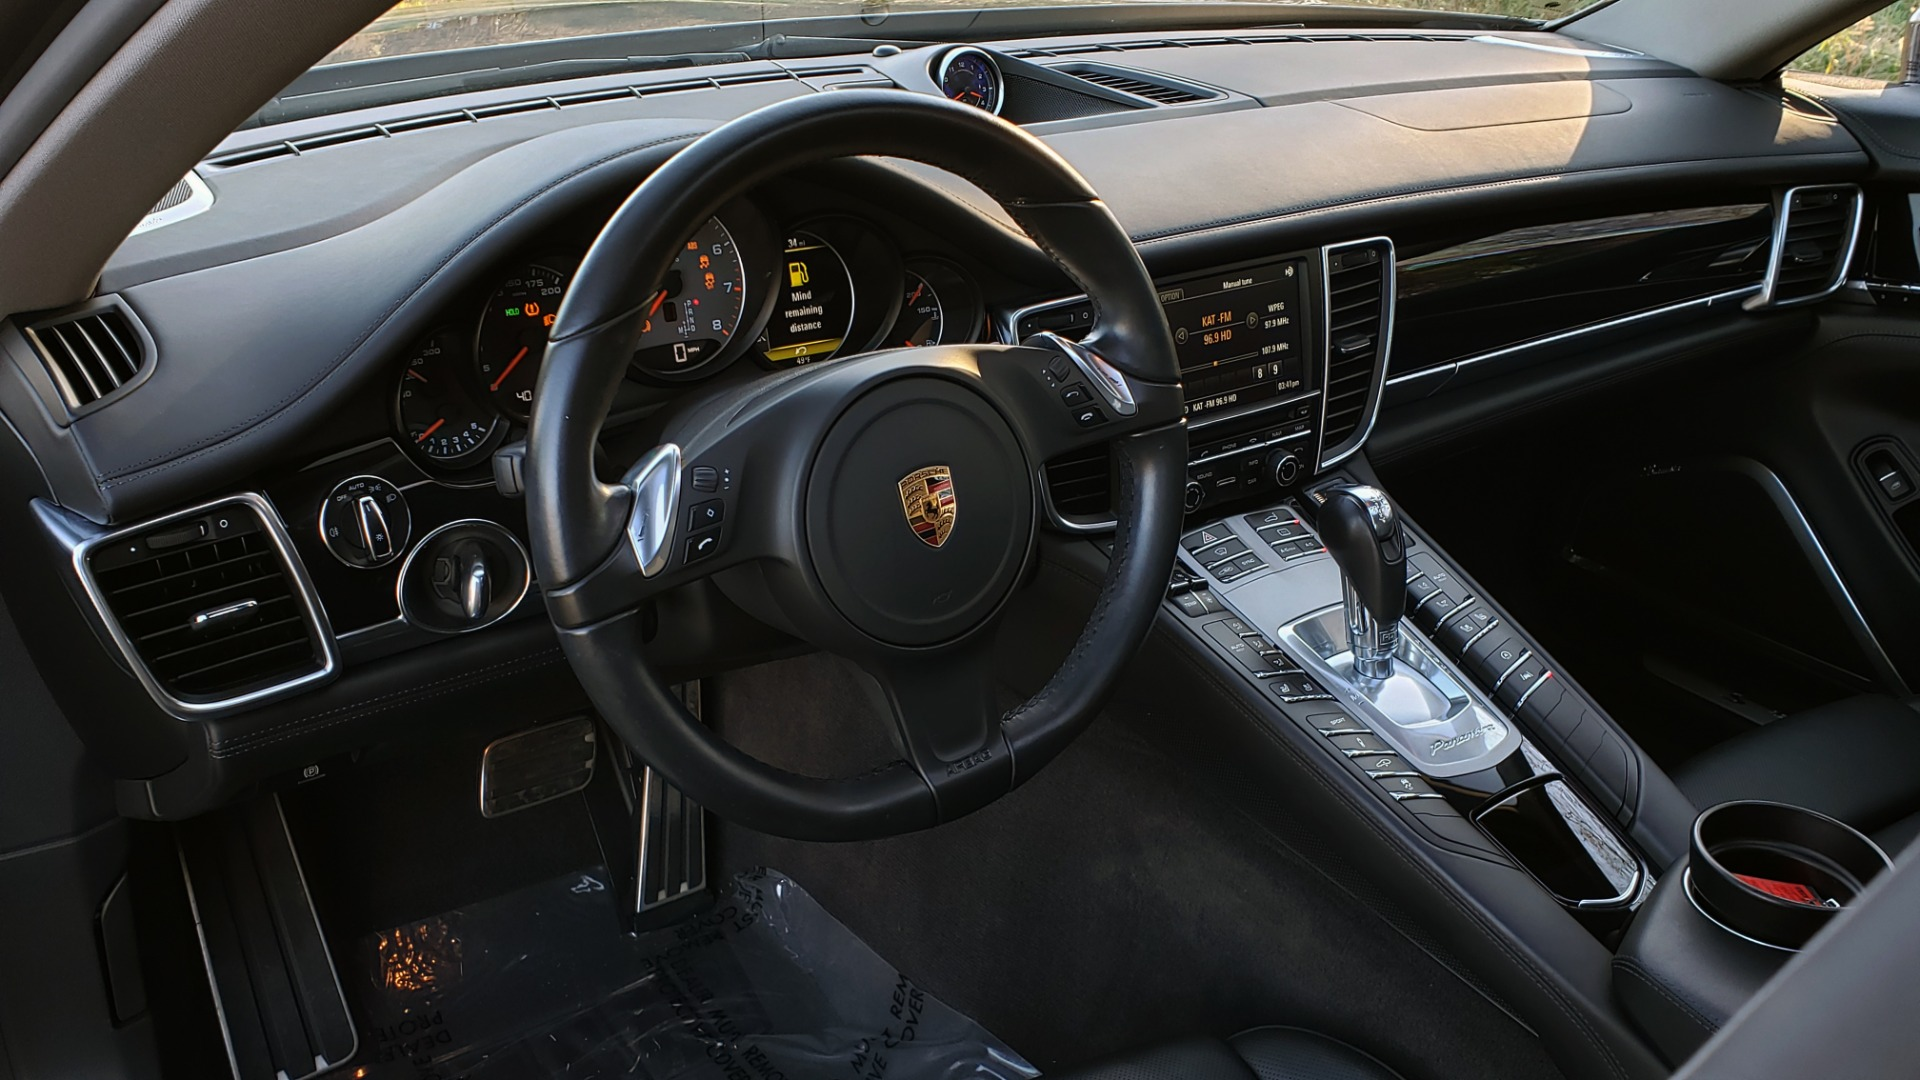 Used 2016 Porsche PANAMERA S / TURBO V6 / PDK / NAV / BOSE / SNRF / LDW / REARVIEW for sale Sold at Formula Imports in Charlotte NC 28227 54